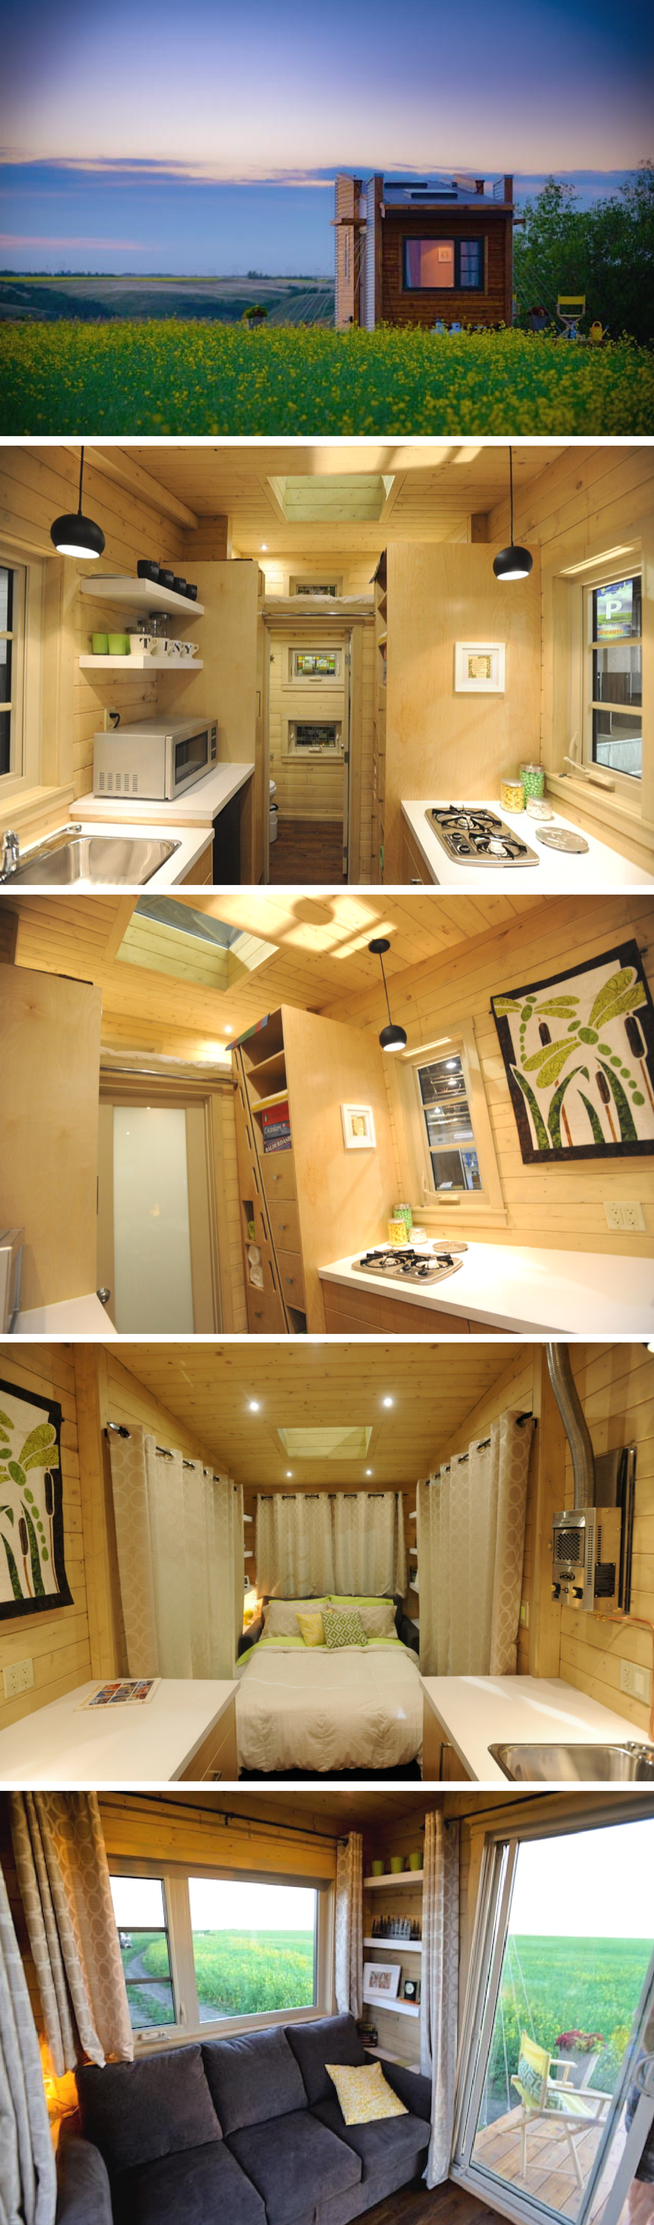 Tiny Home Designs: The Dragonfly: A 160 Sq Ft Tiny House, Currently Available